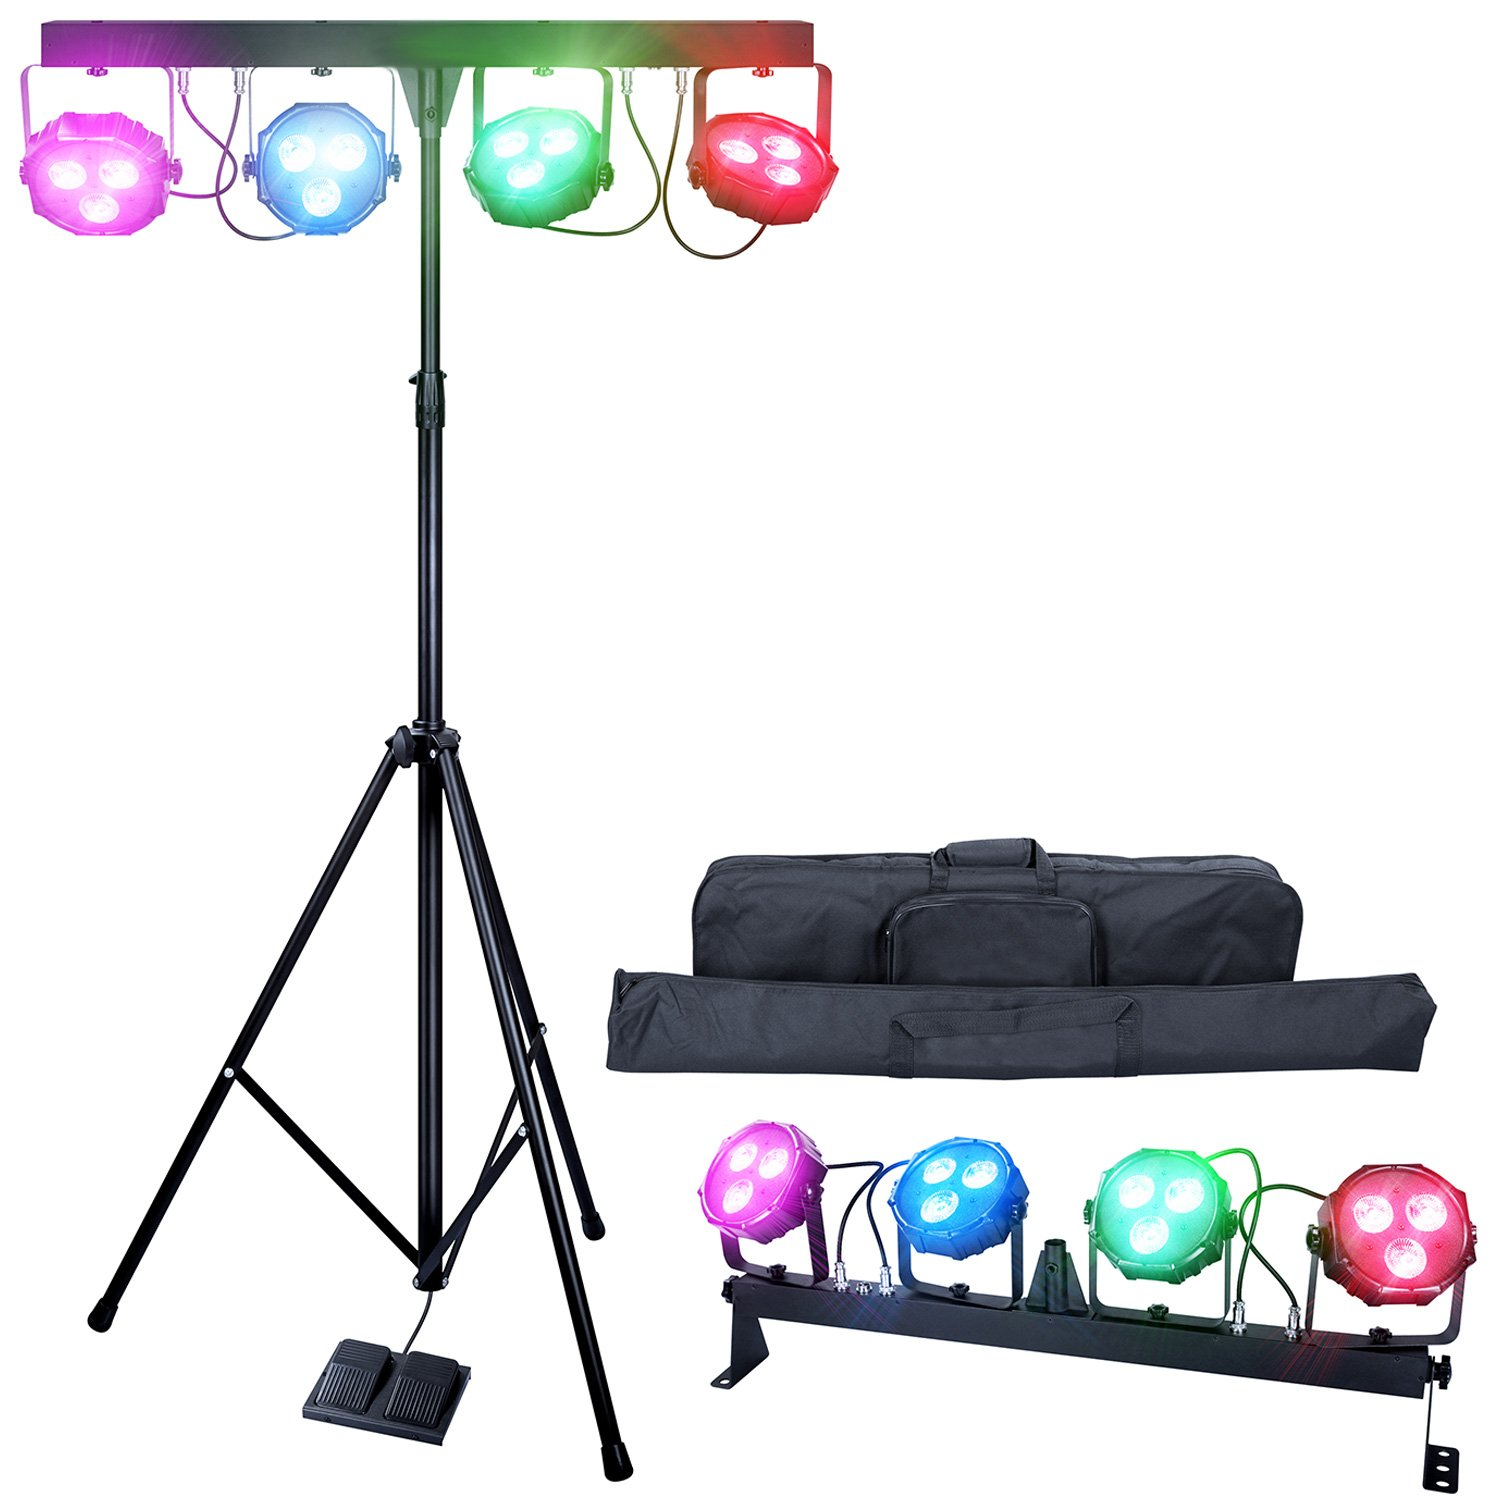 Dragonx 4 Bar Led Mobile Dj Stage